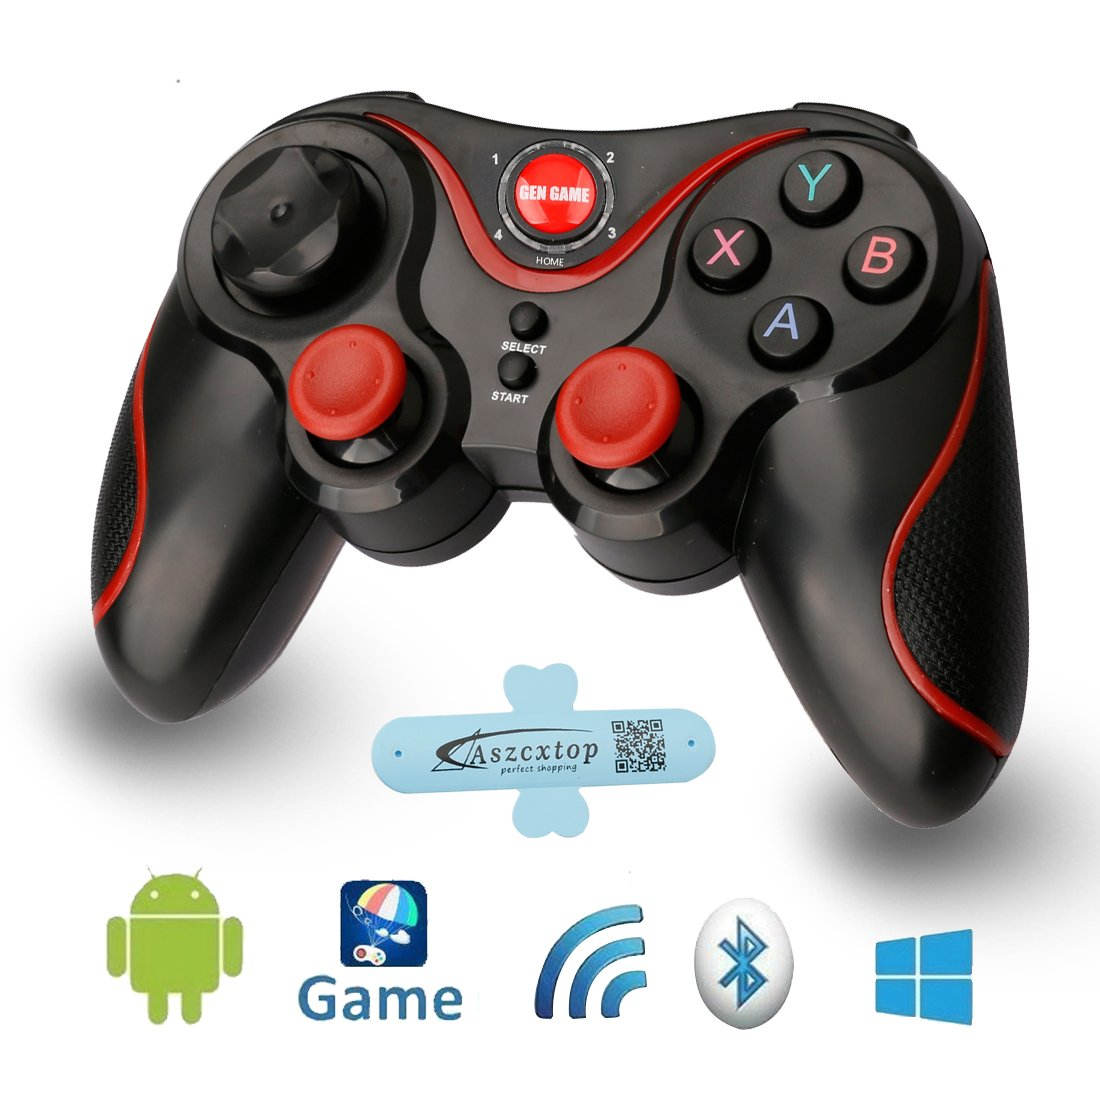 A-szcxtop S3 Bluetooth Gamepad wire wireless Rechargeable Game Controller Support for Smart phone,Pad,TV,TV Box with Android Platform 3.2 and Above